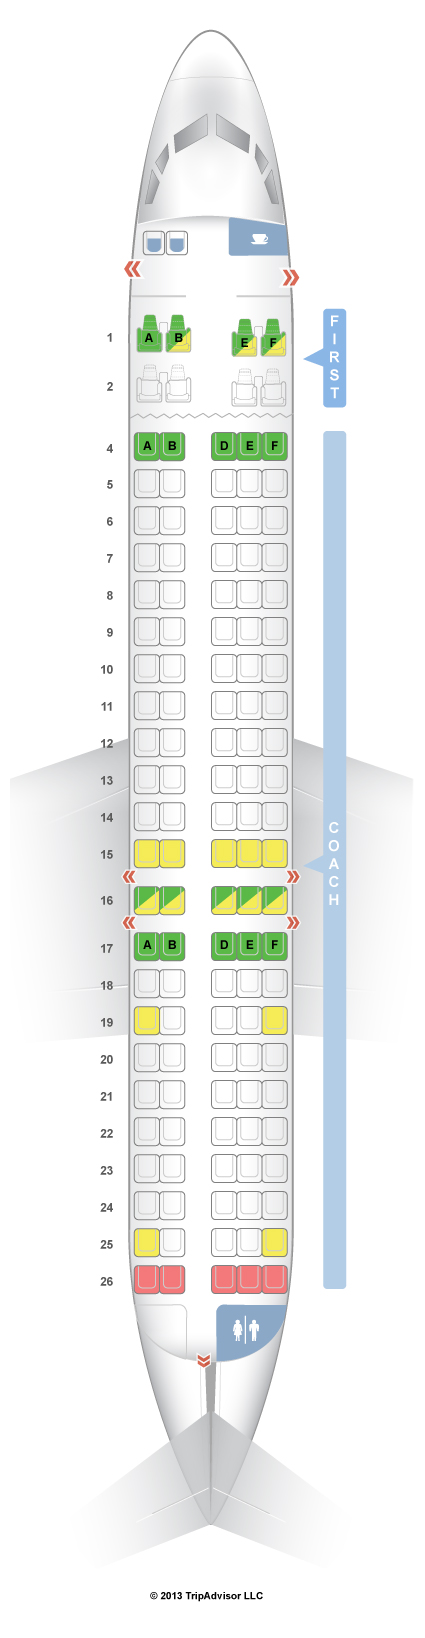 Delta Boeing 717 Seating Chart - #GolfClub on